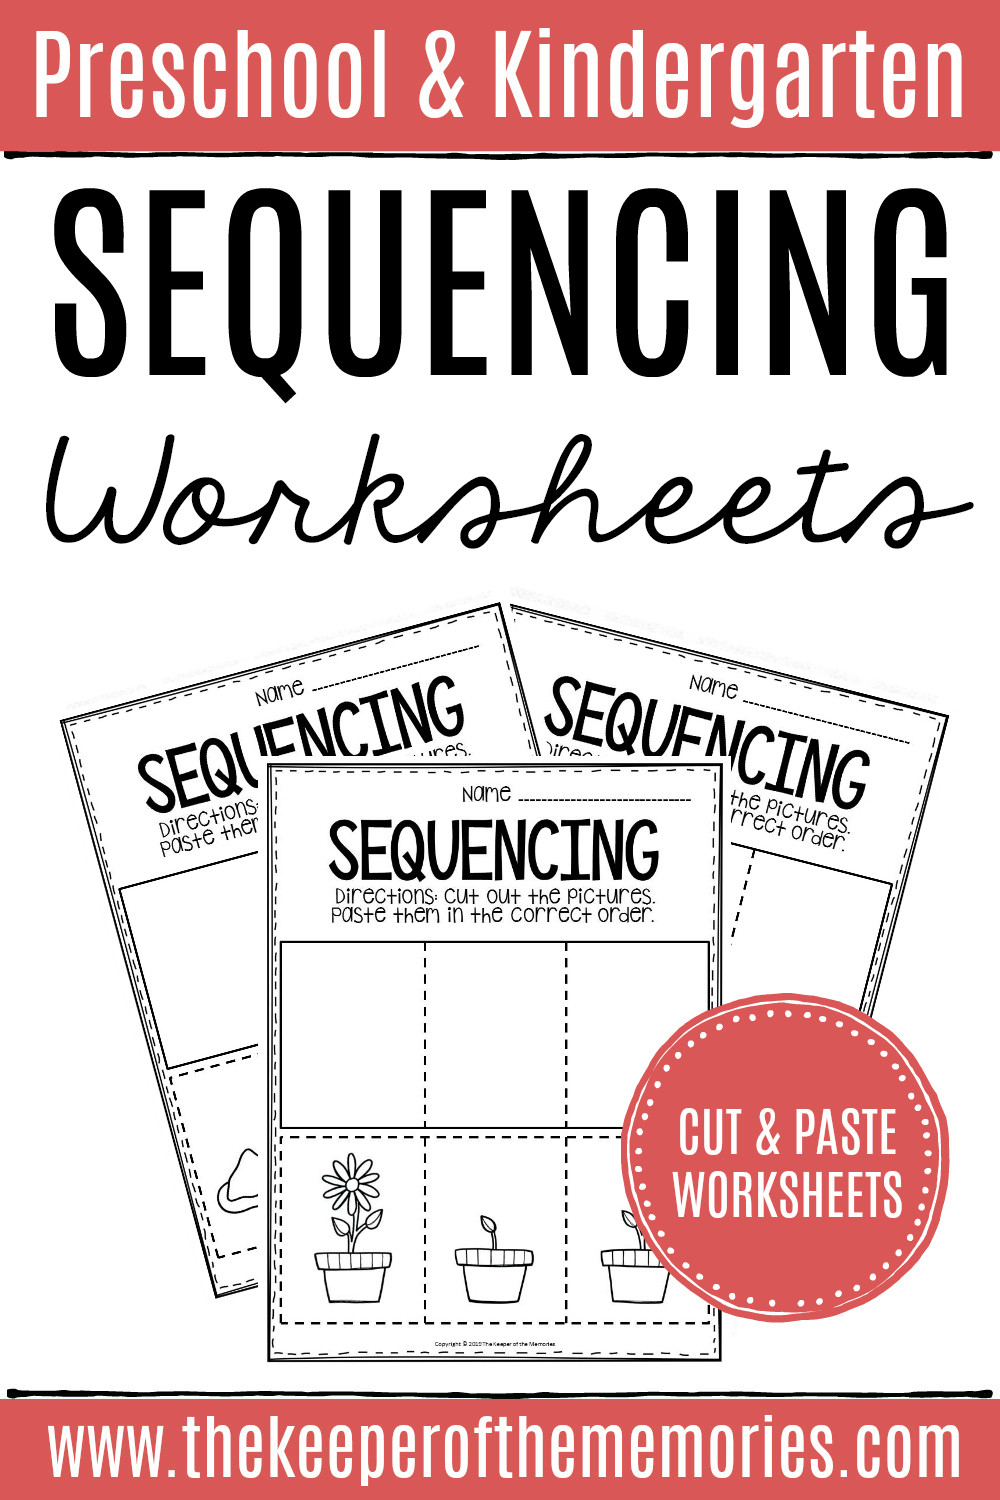 Free Printable Story Sequencing Worksheets 3 Step Sequencing Worksheets the Keeper Of the Memories